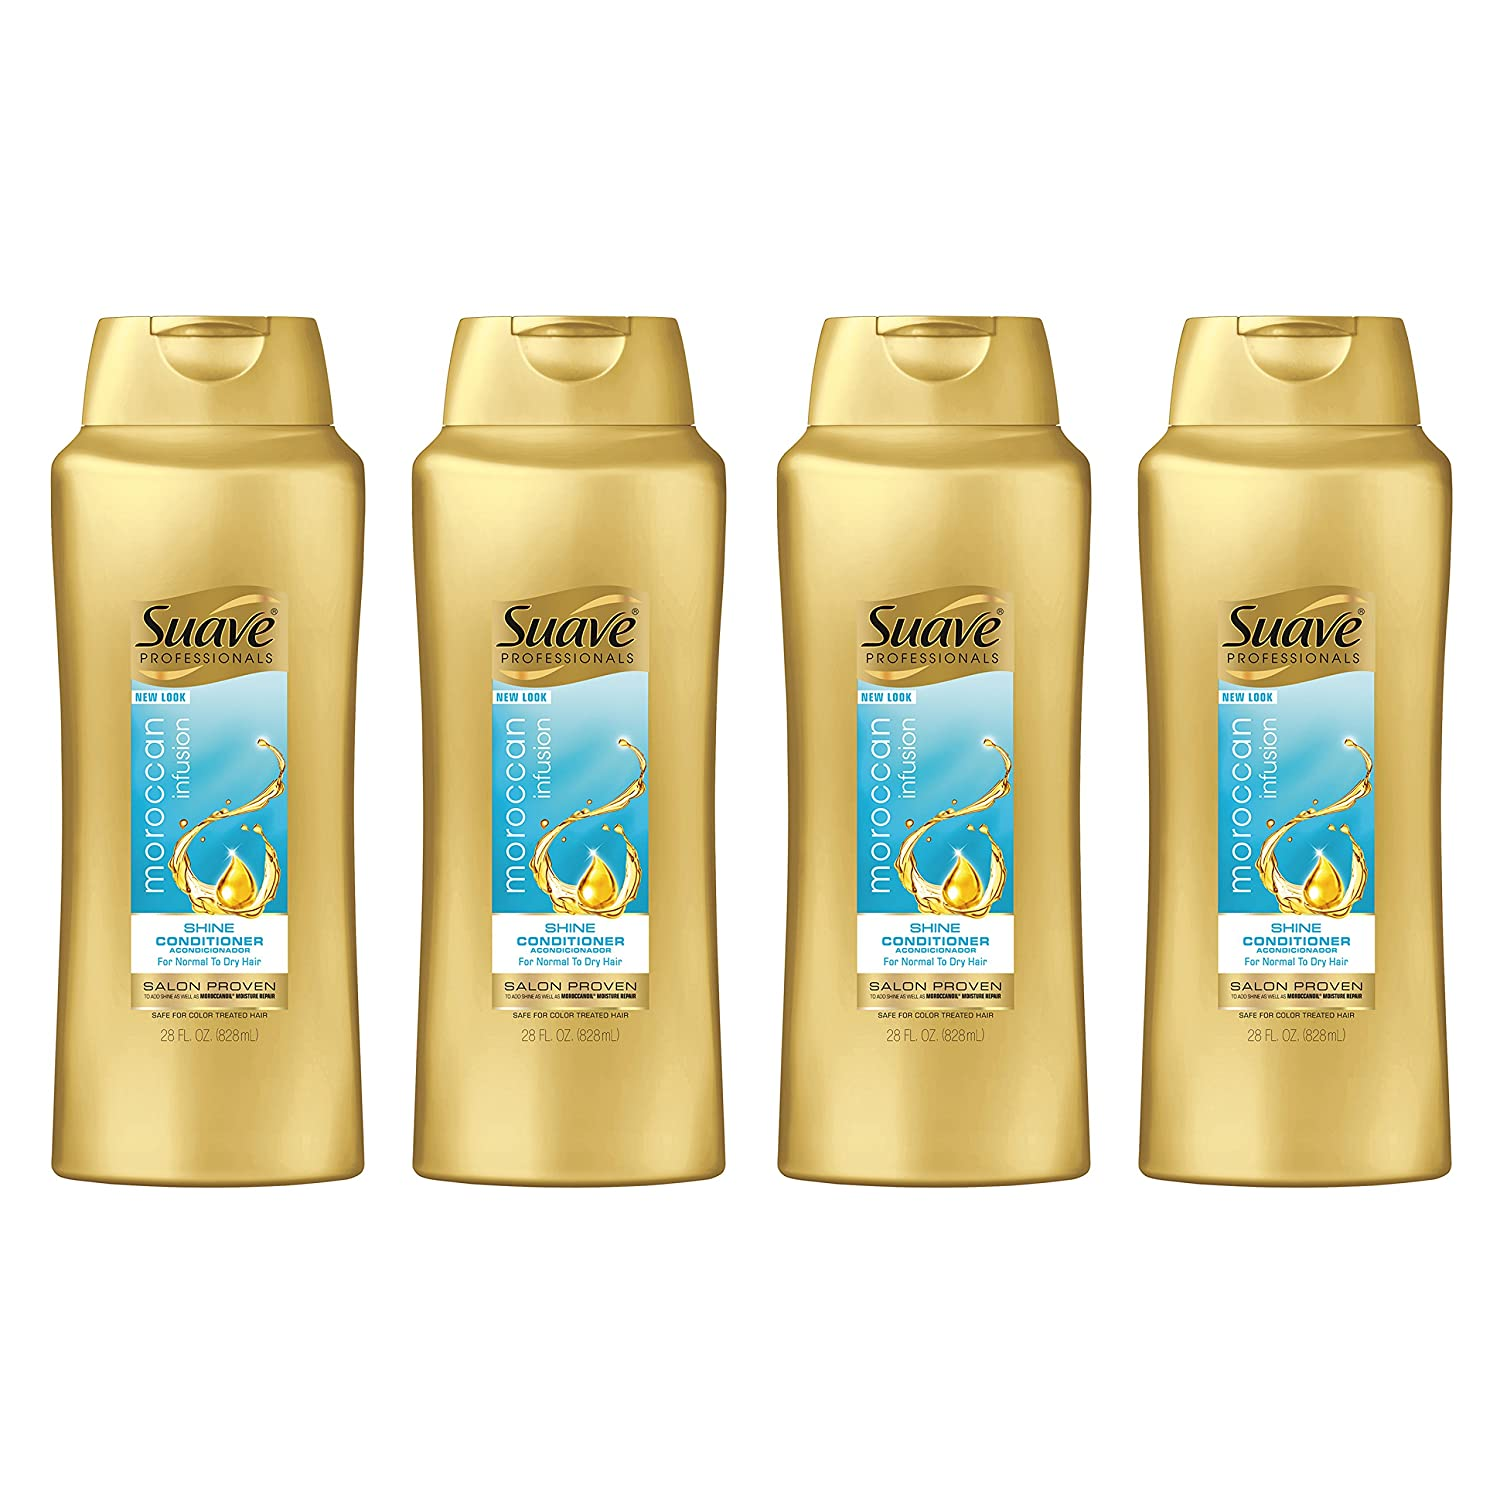 Suave Professionals Men Shampoo, Daily Clean Ocean Charge 12.6 oz (Pack of 6) Unilever 10079400128048